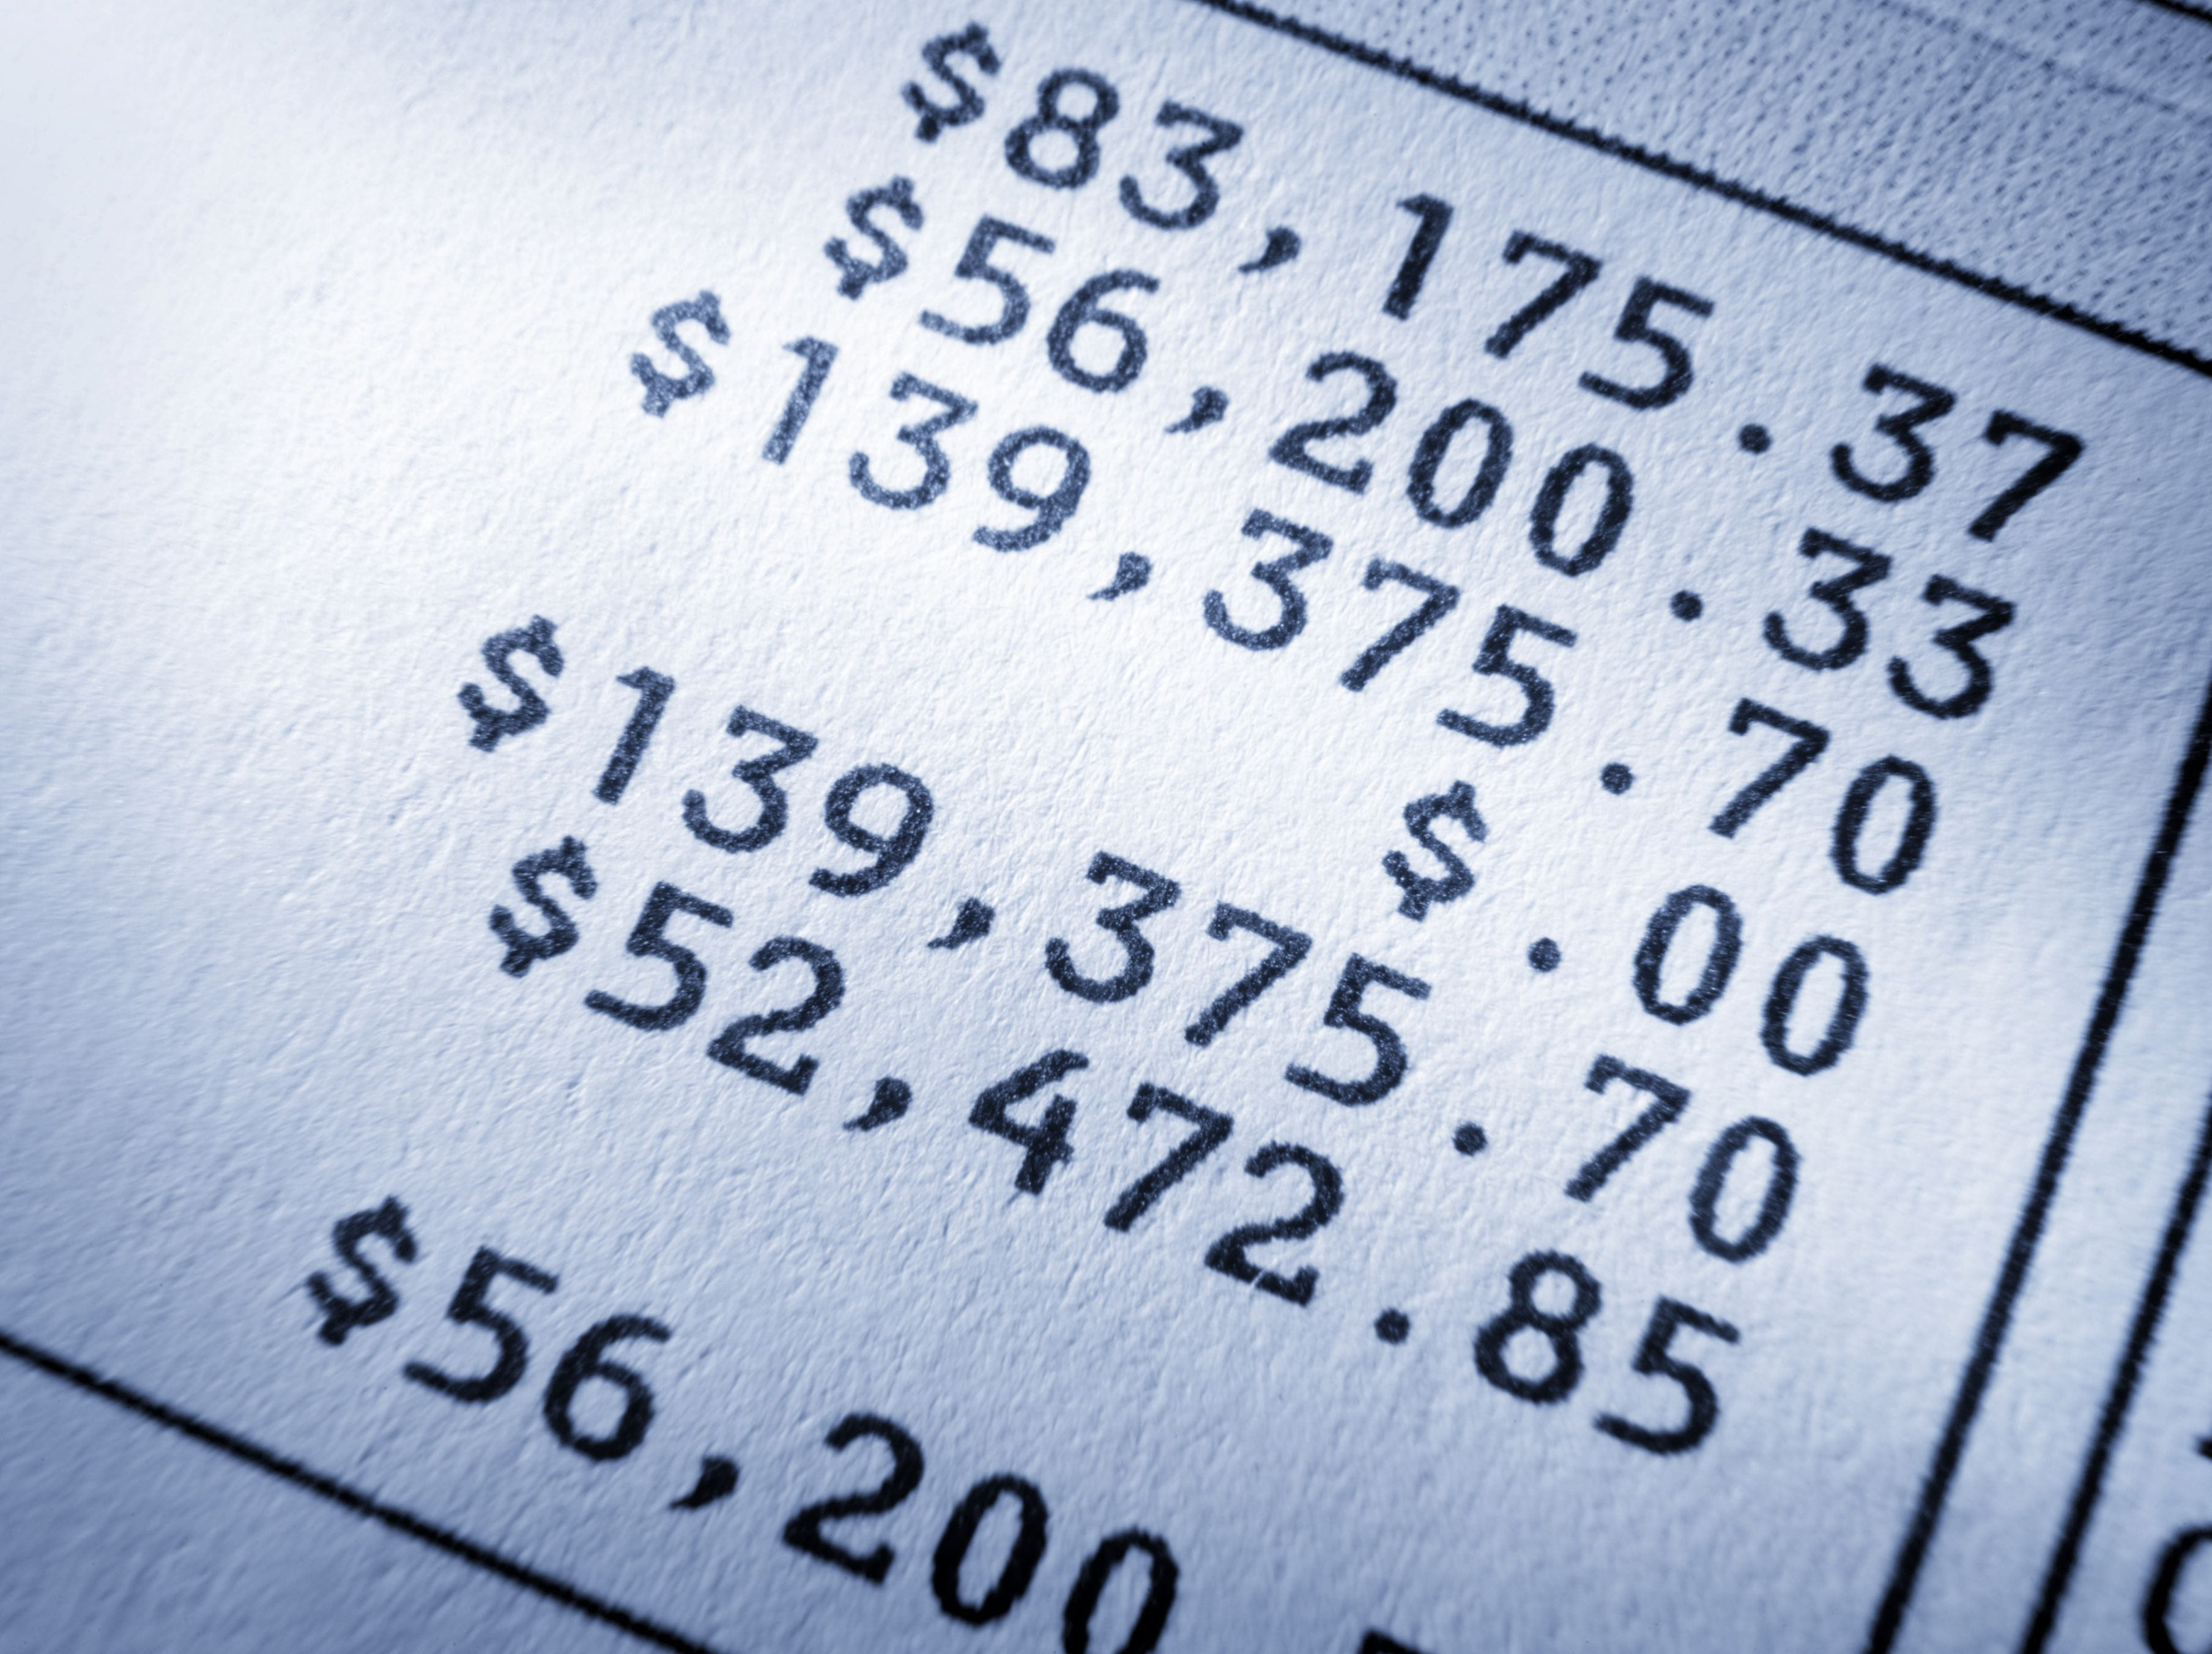 A calculation of net worth numbers